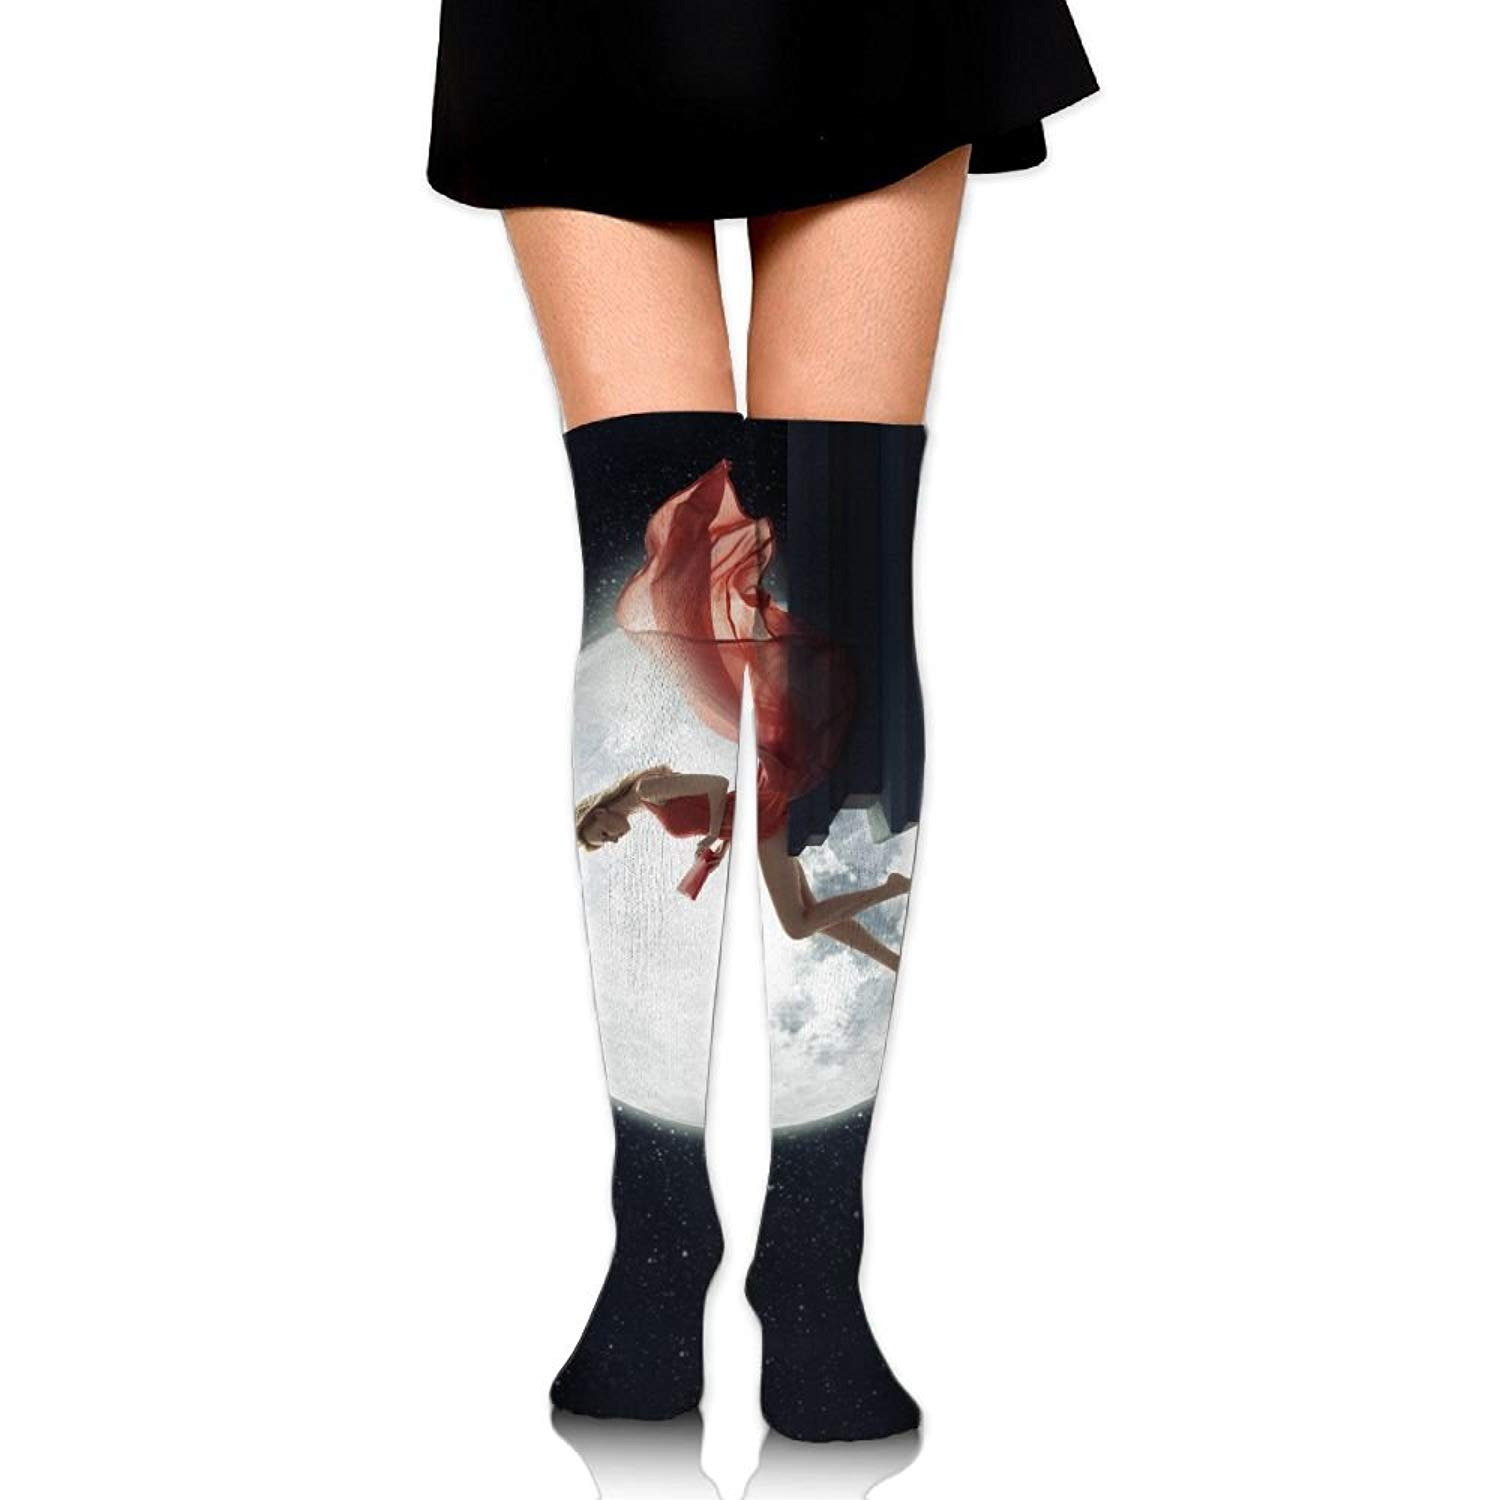 344f2694bcd Get Quotations · Sexy Woman Moon Galaxy Ankle Stockings Over The Knee Sexy  Womens Sports Athletic Soccer Socks